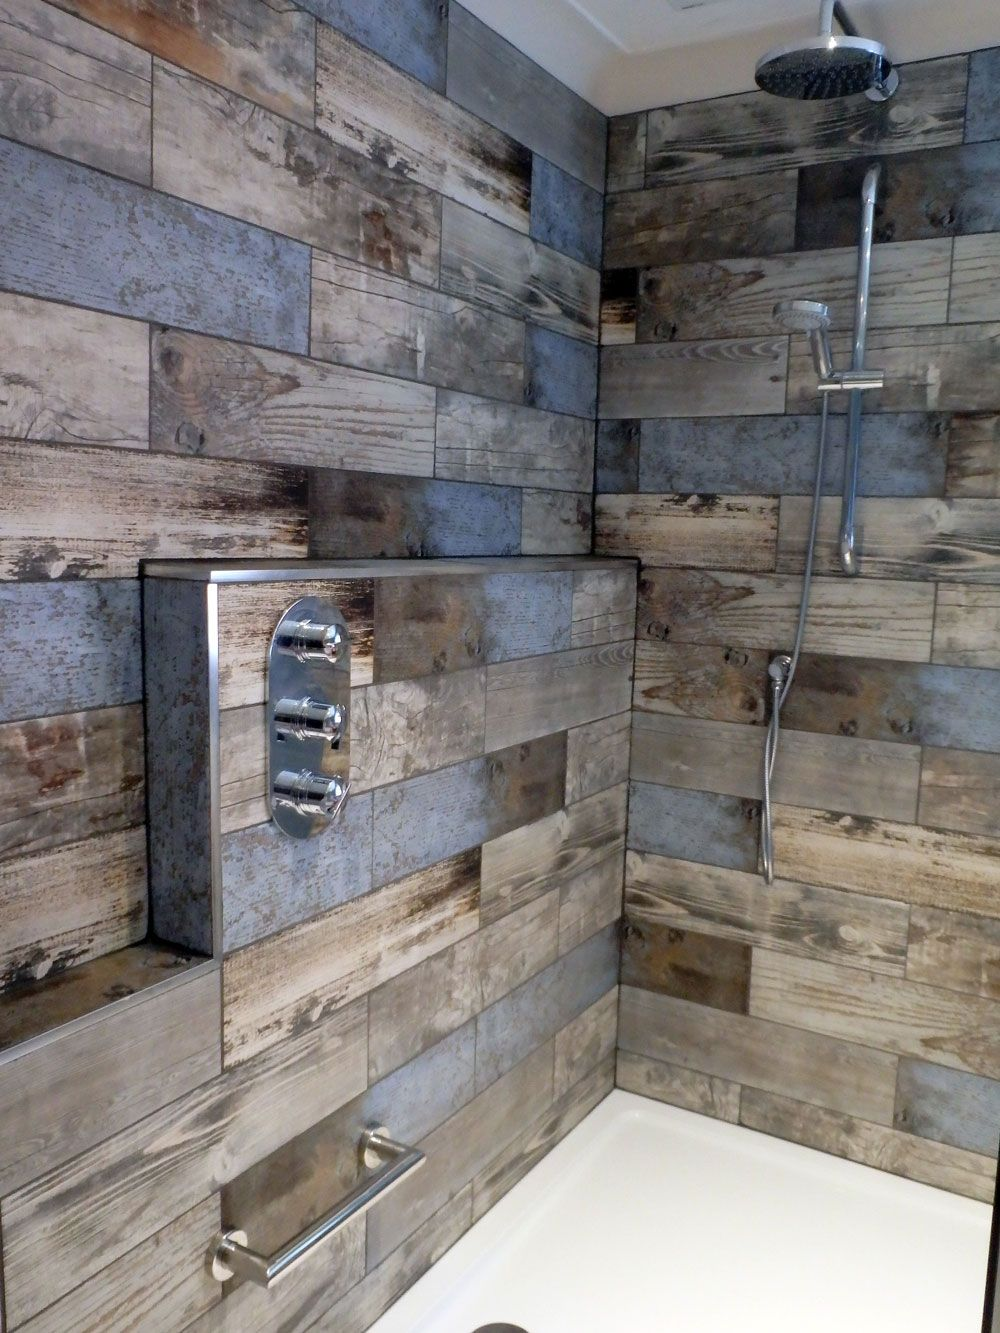 Rustic Bathroom Wall Cabinet: Wood Effect Tiles In Shower Area